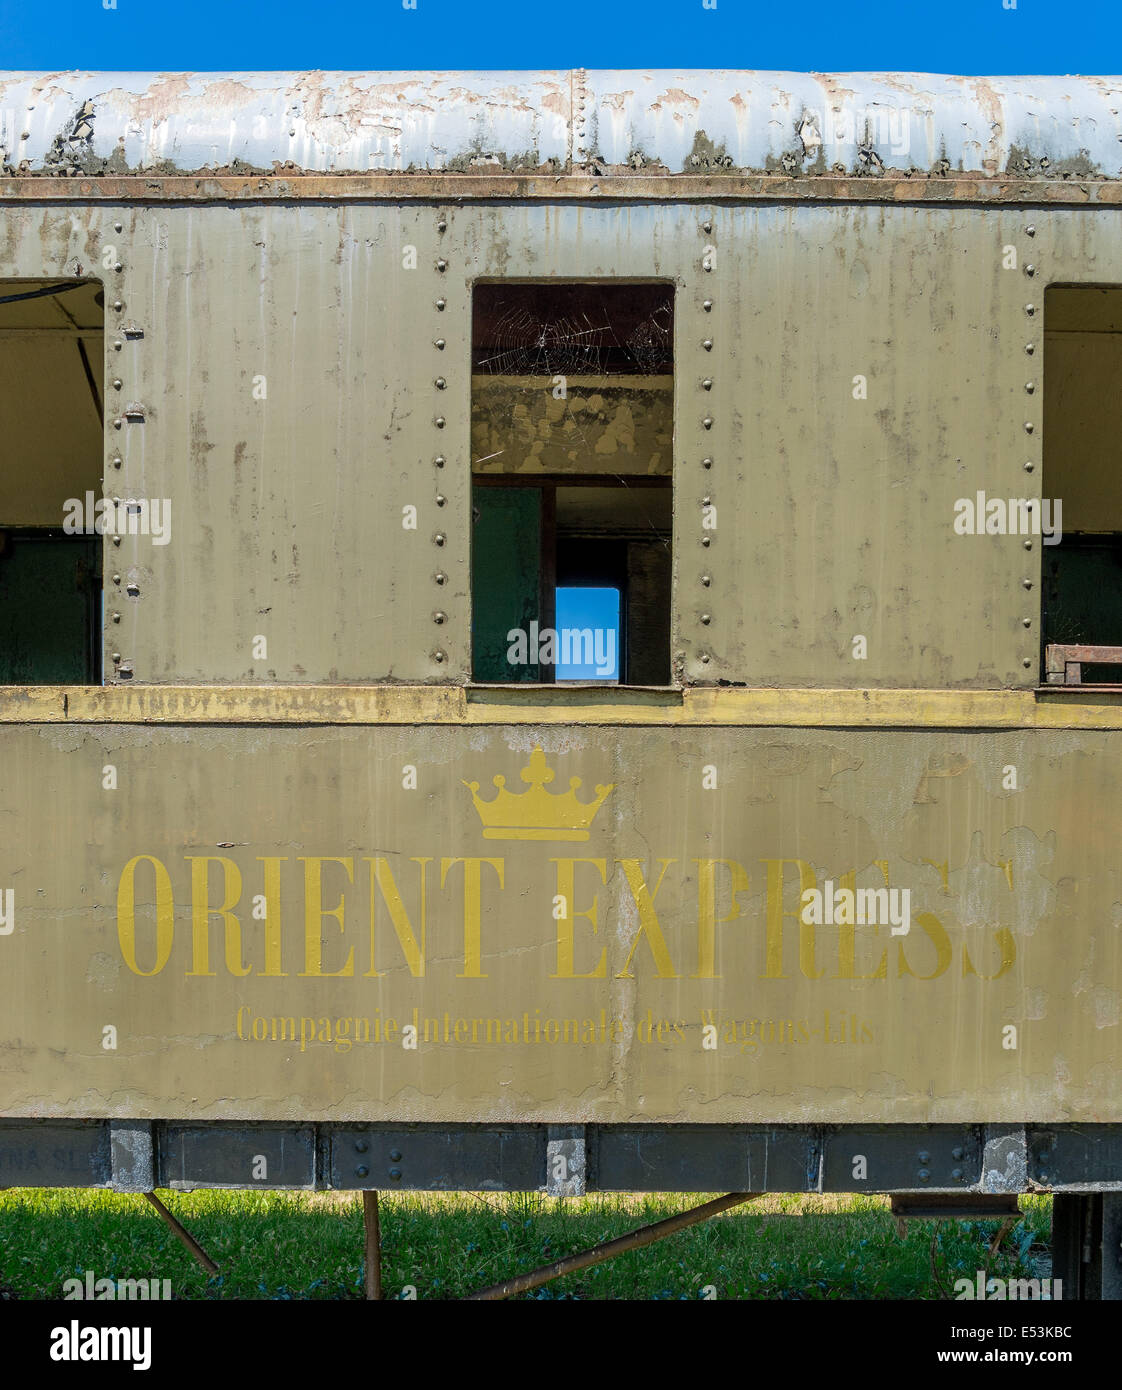 Former Orient Express carriage from nineteen twenties - Stock Image